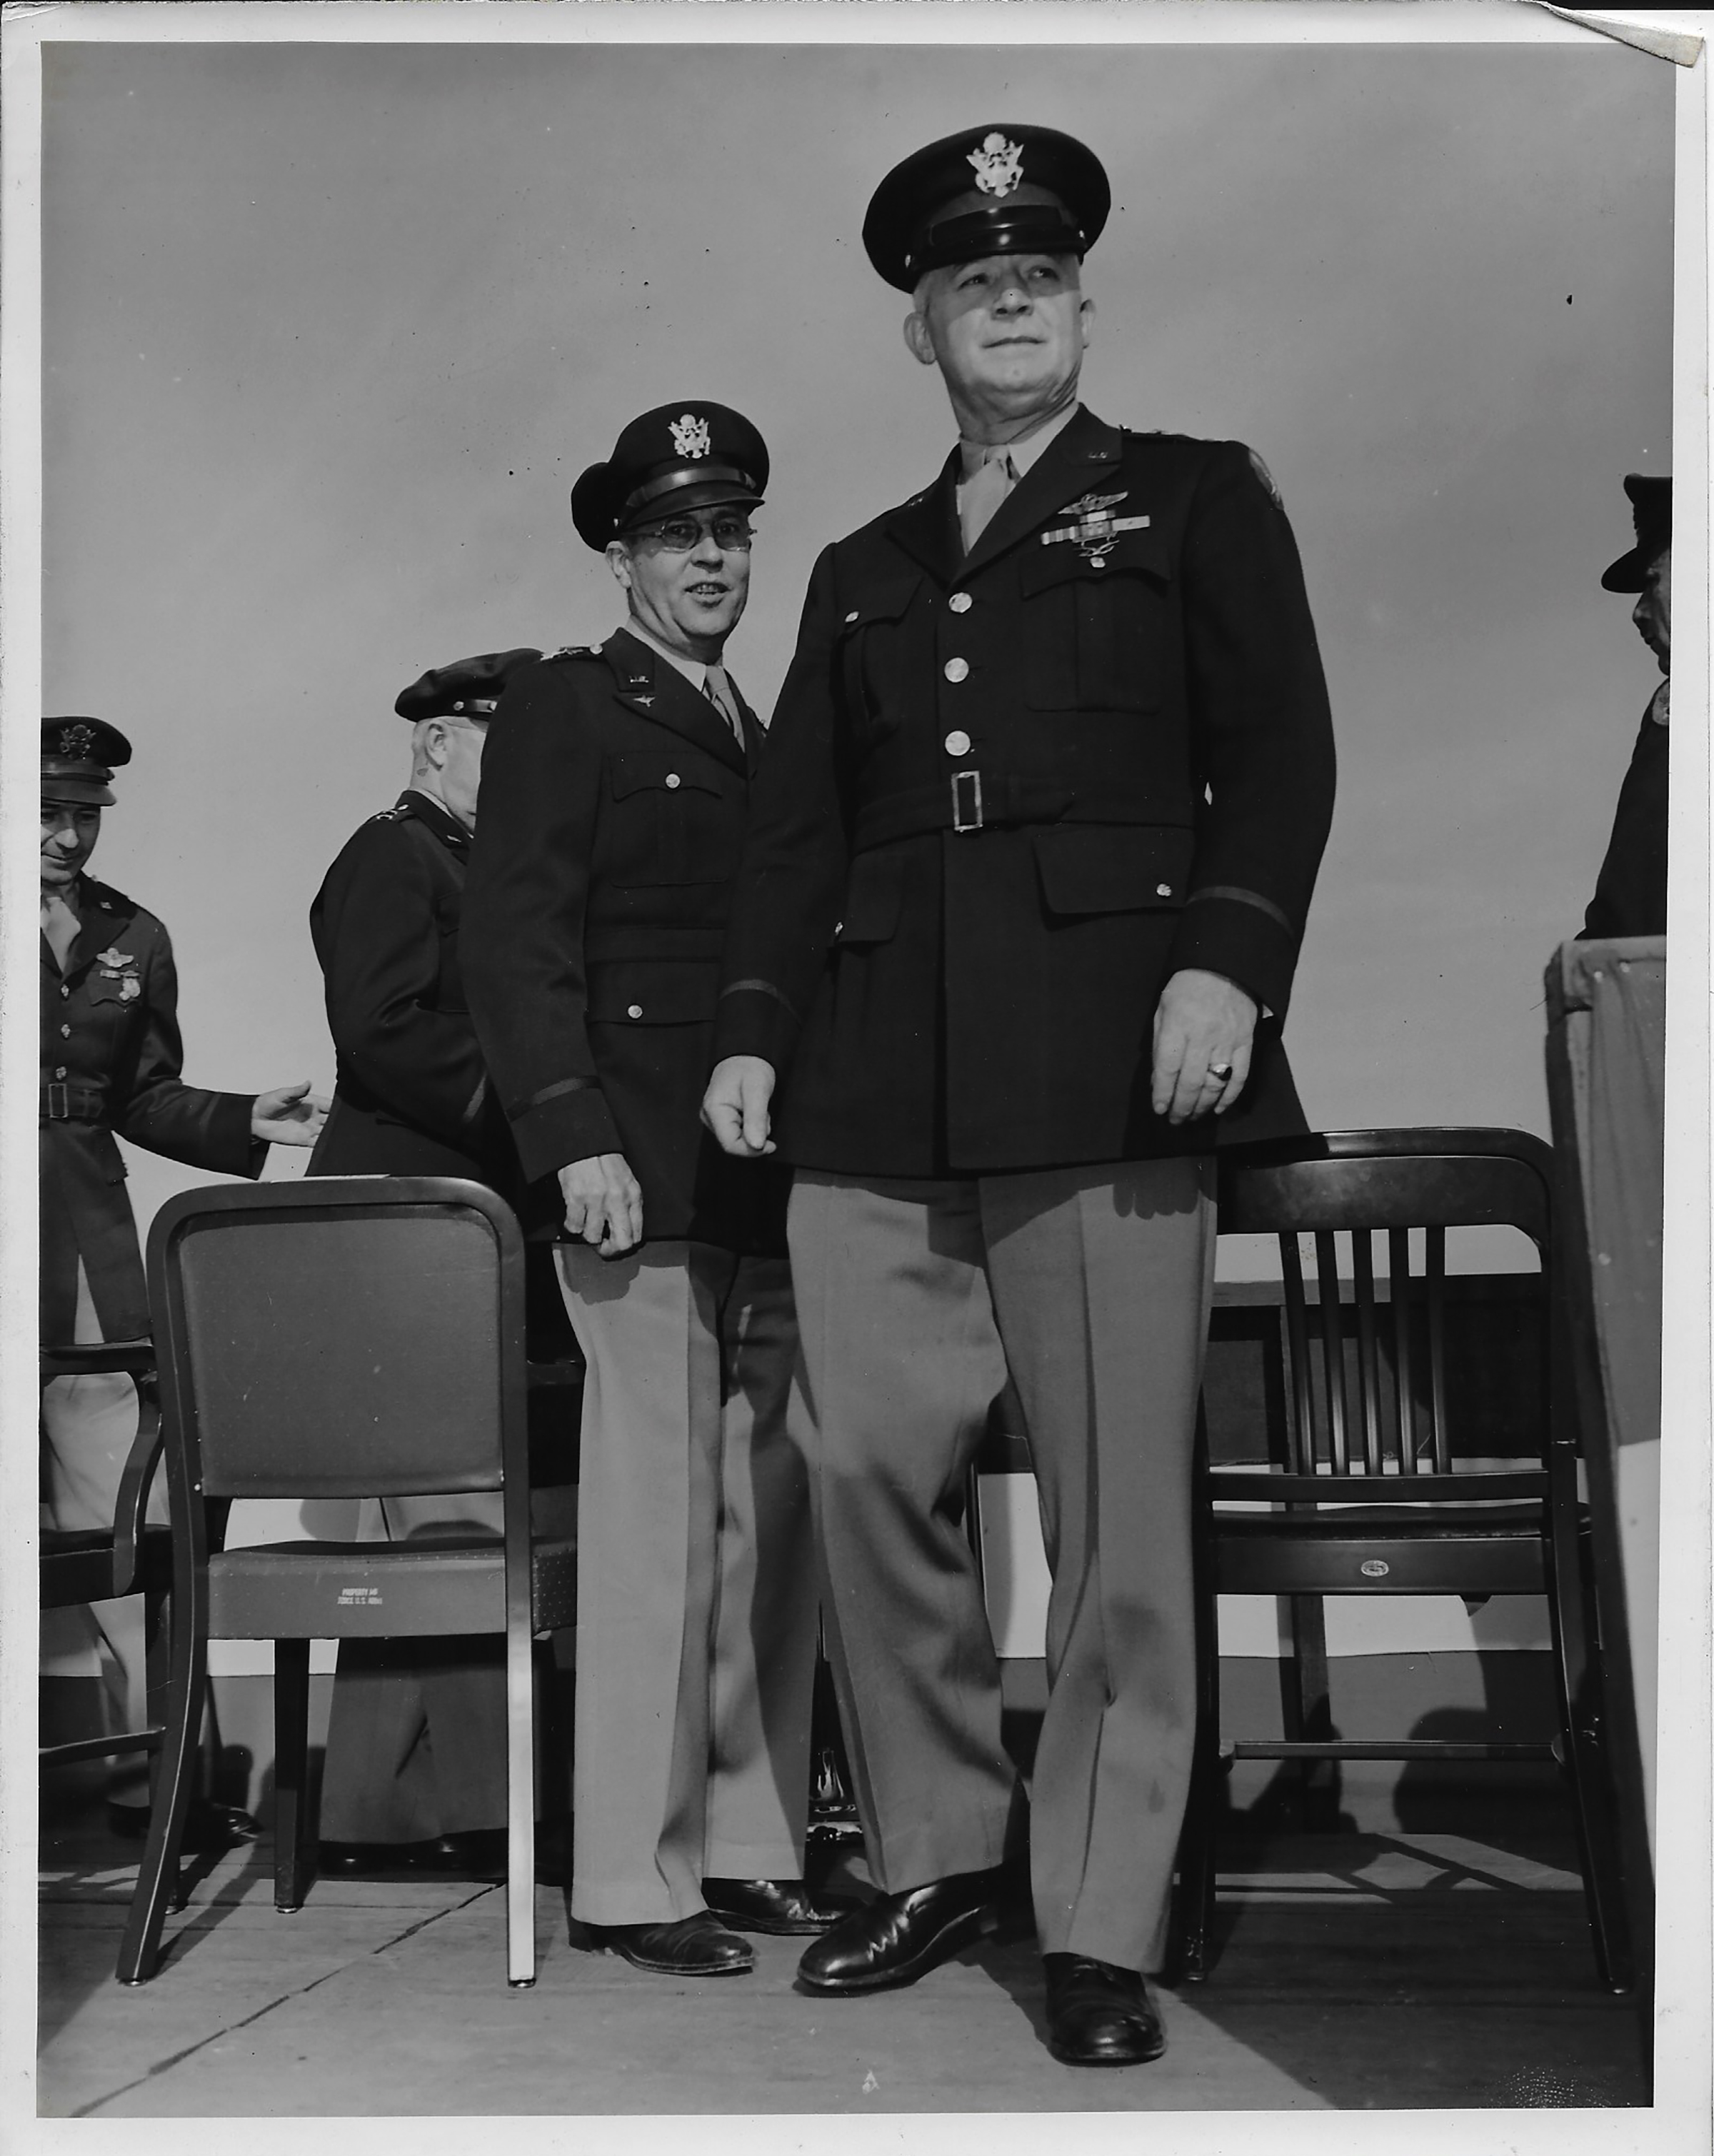 Cataclysm: General Hap Arnold and the Defeat of Japan